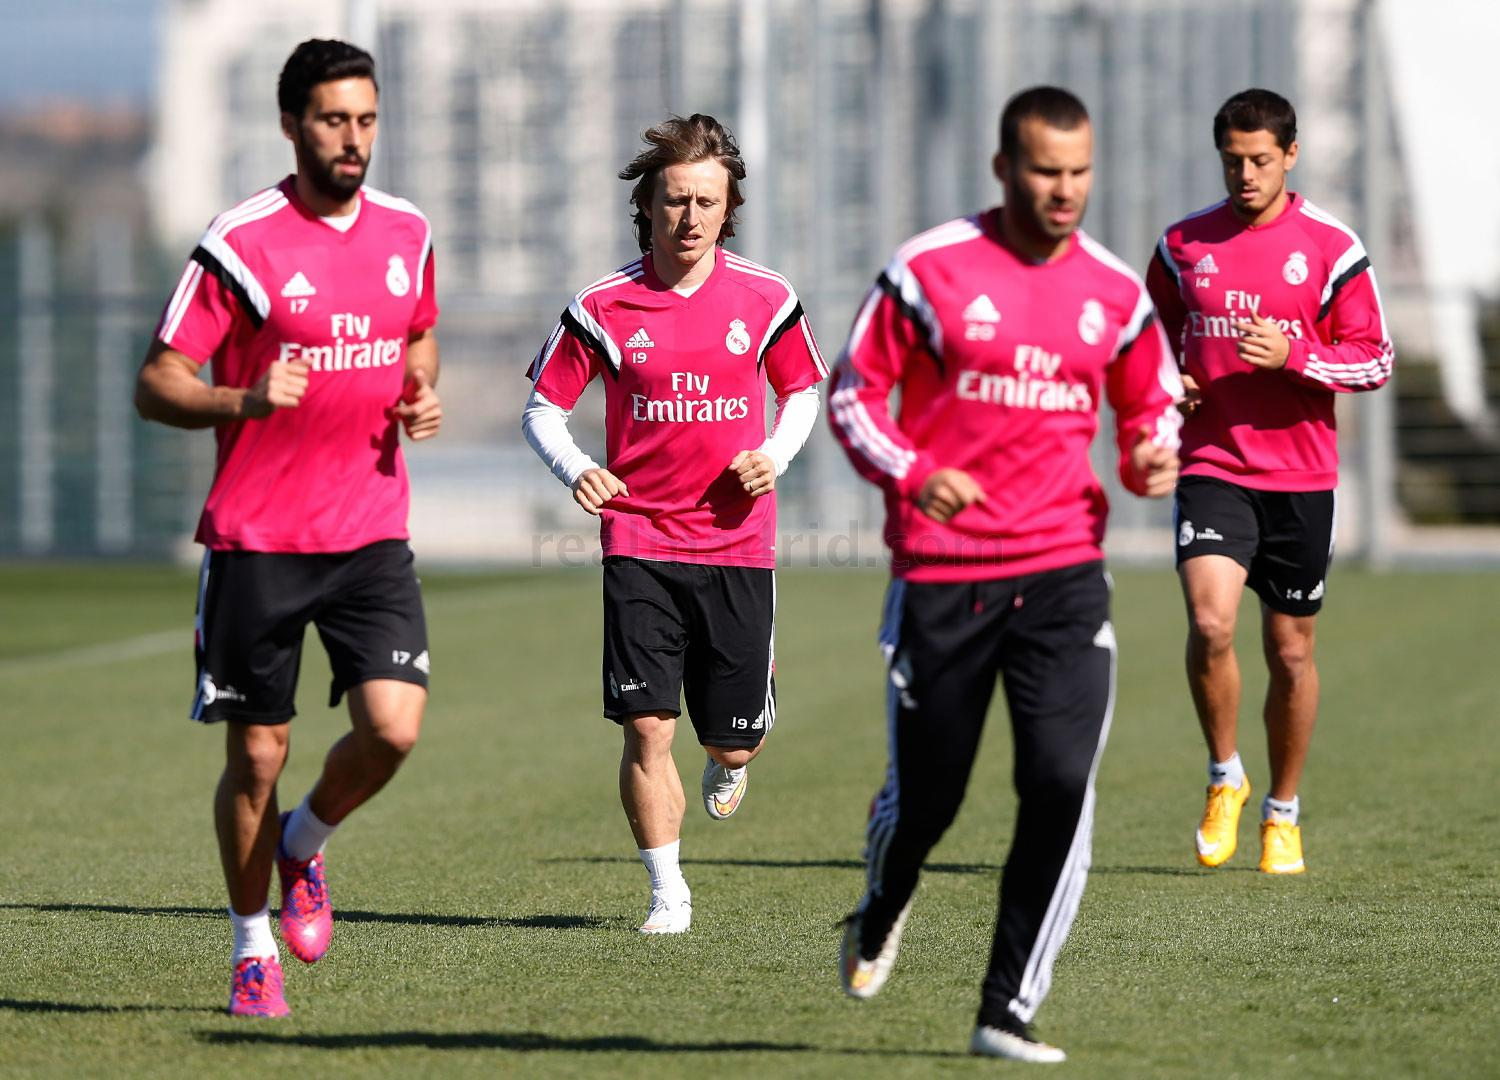 Real Madrid - Entrenamiento del Real Madrid - 08-03-2015